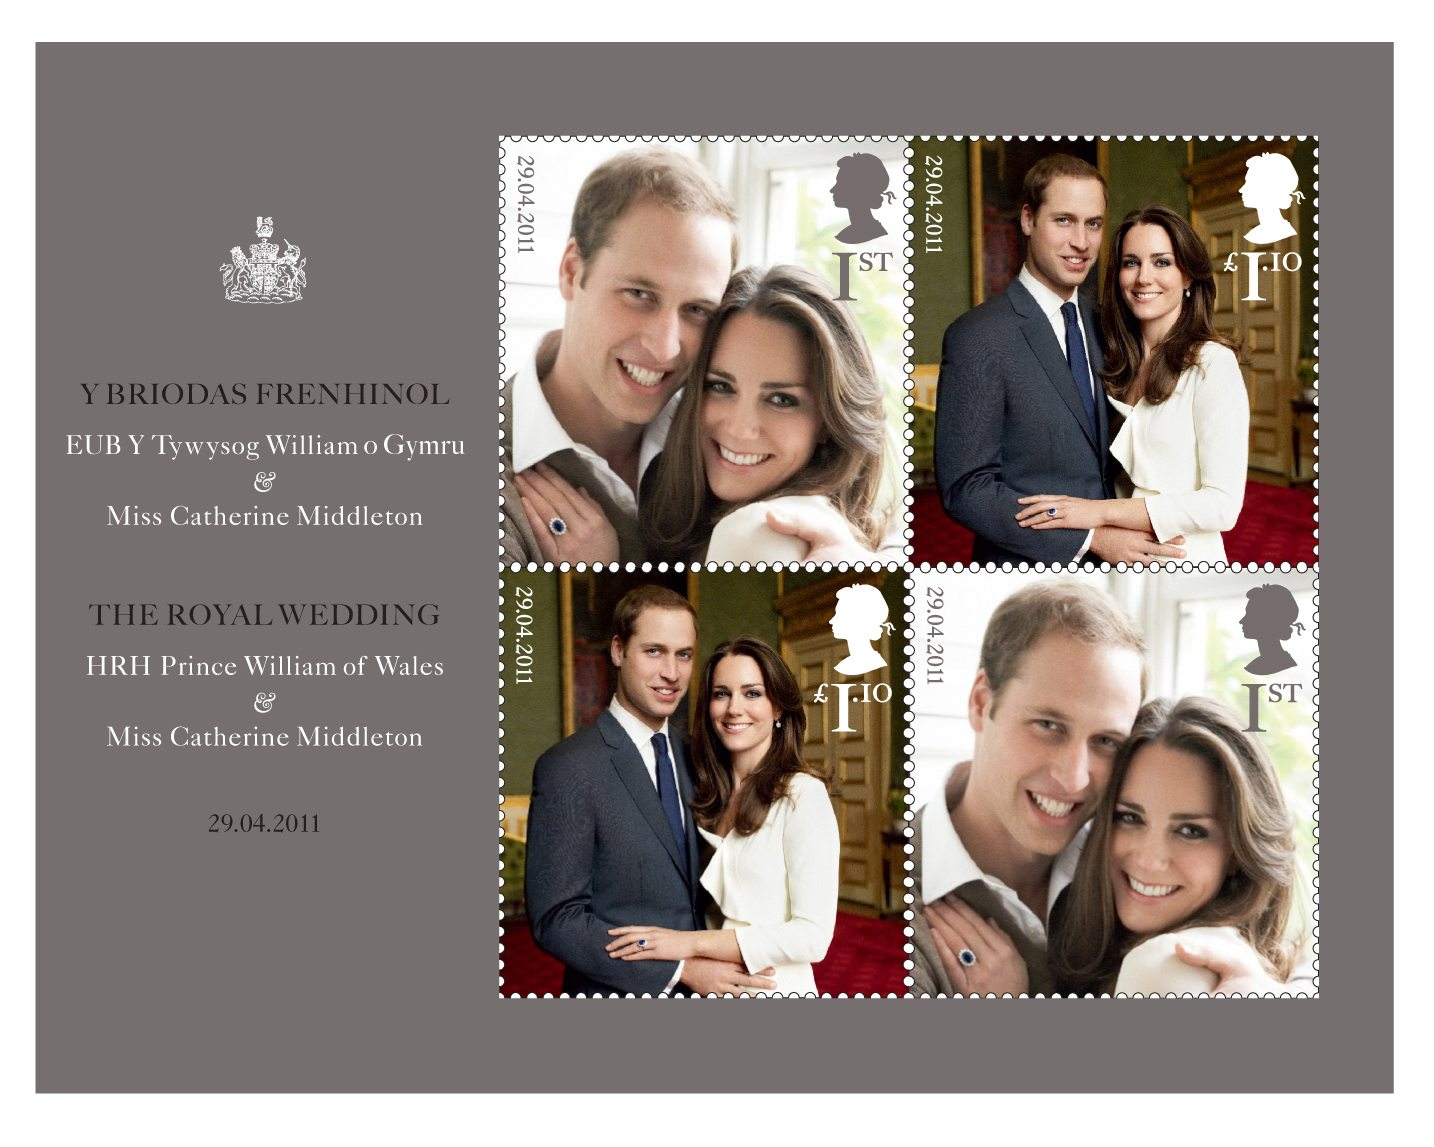 Miniature sheet with images of the royal couple Prince William and Kate Middleton.